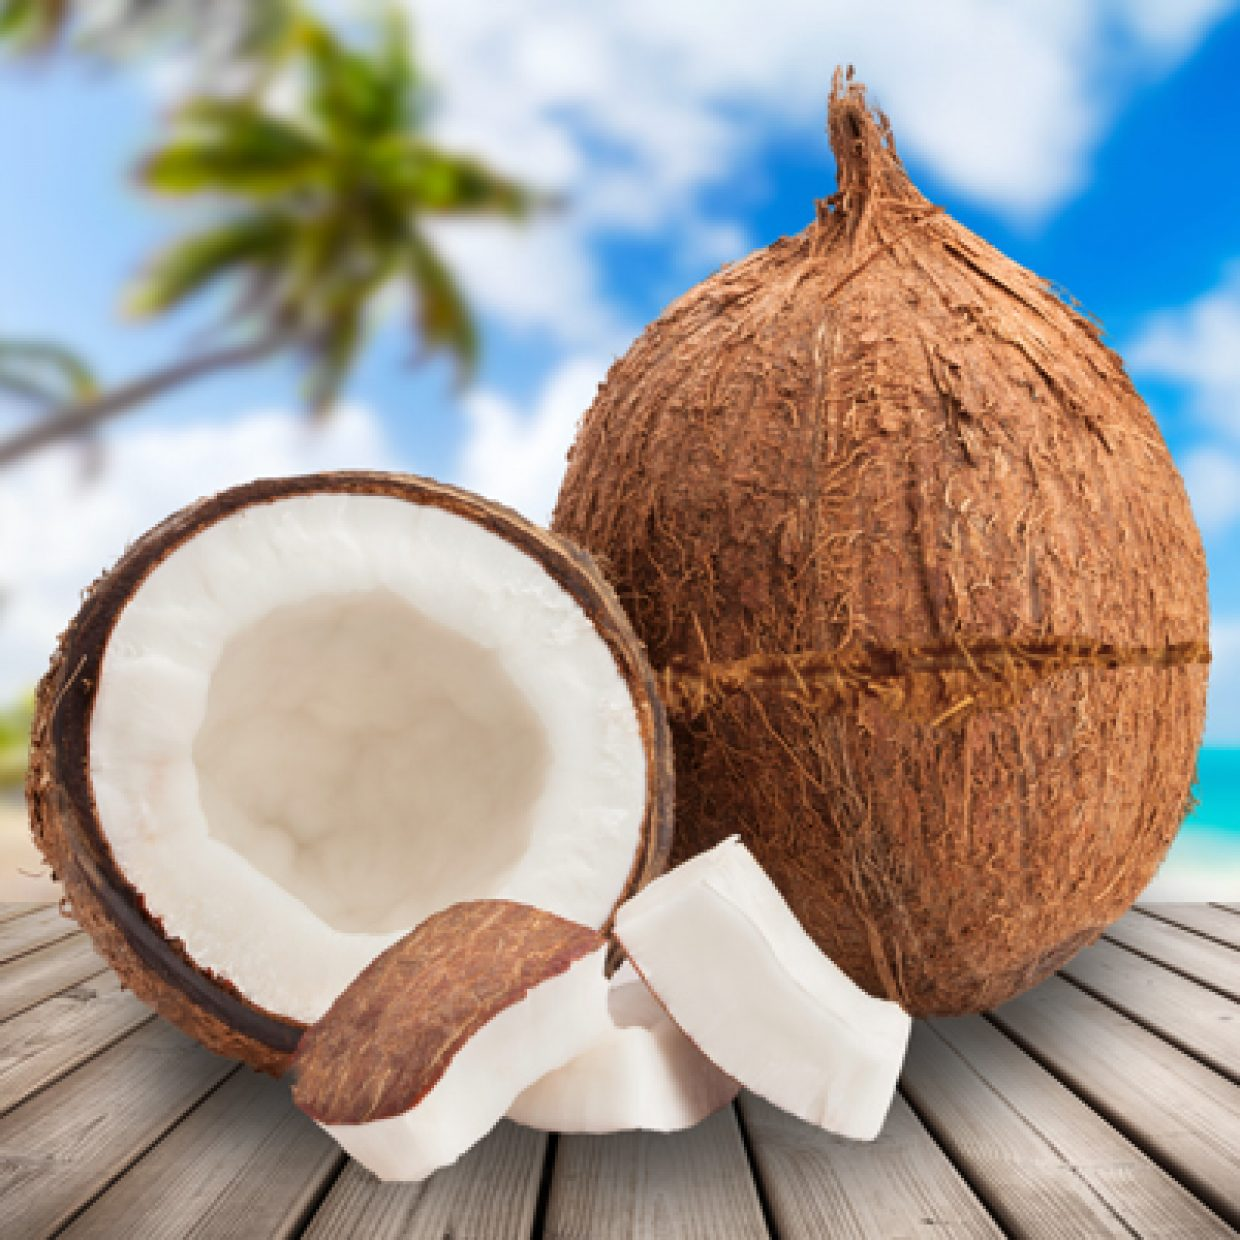 All About Groovy Coconuts